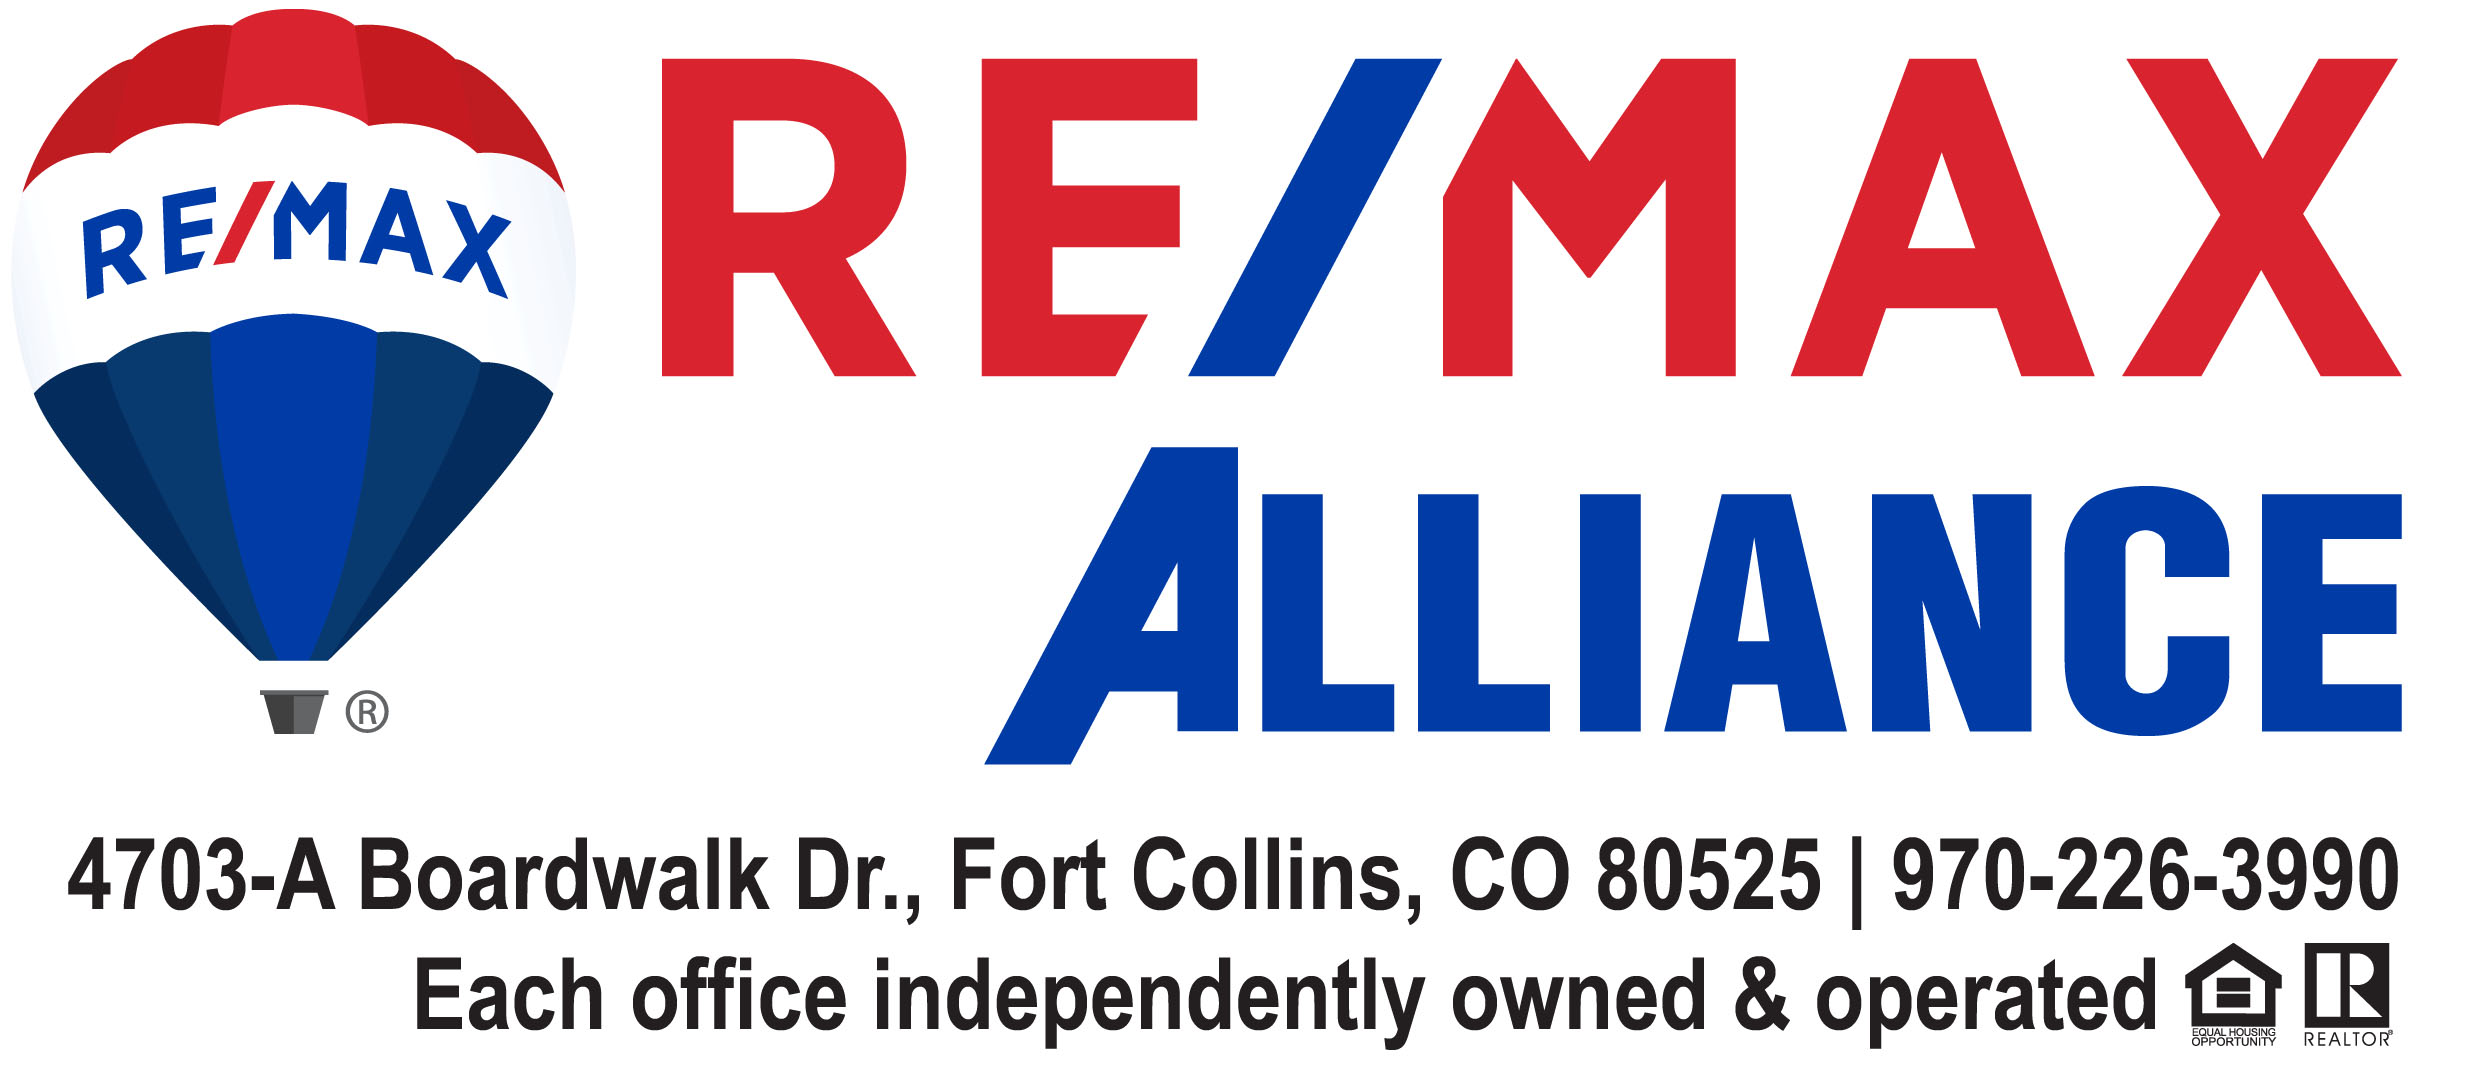 Fort-Collins-Colorado-realtor